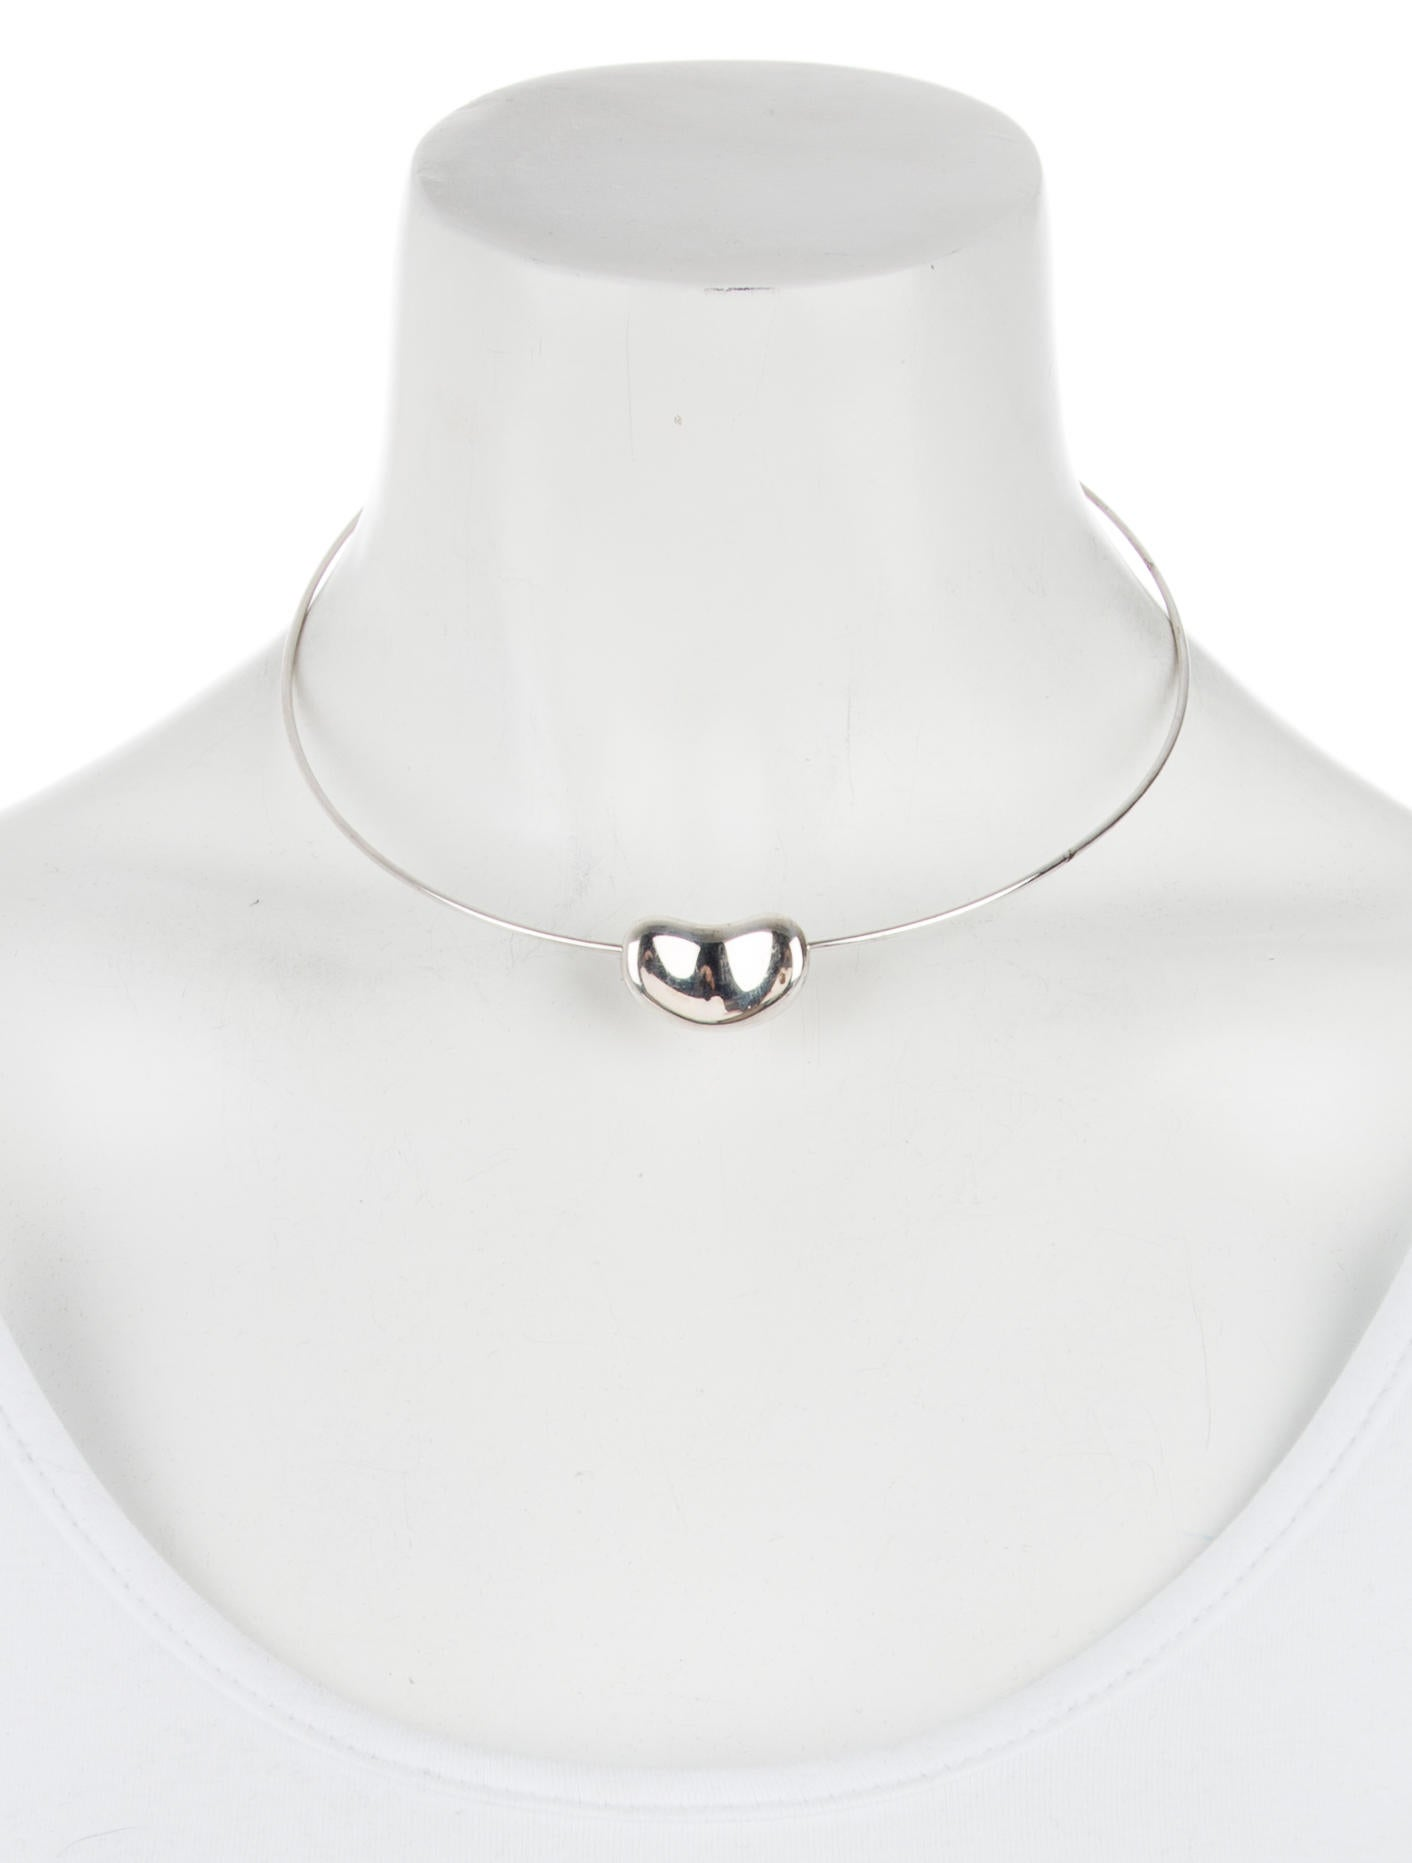 Tiffany & Co. Bean Wire Collar Necklace - Necklaces - TIF61314 | The ...